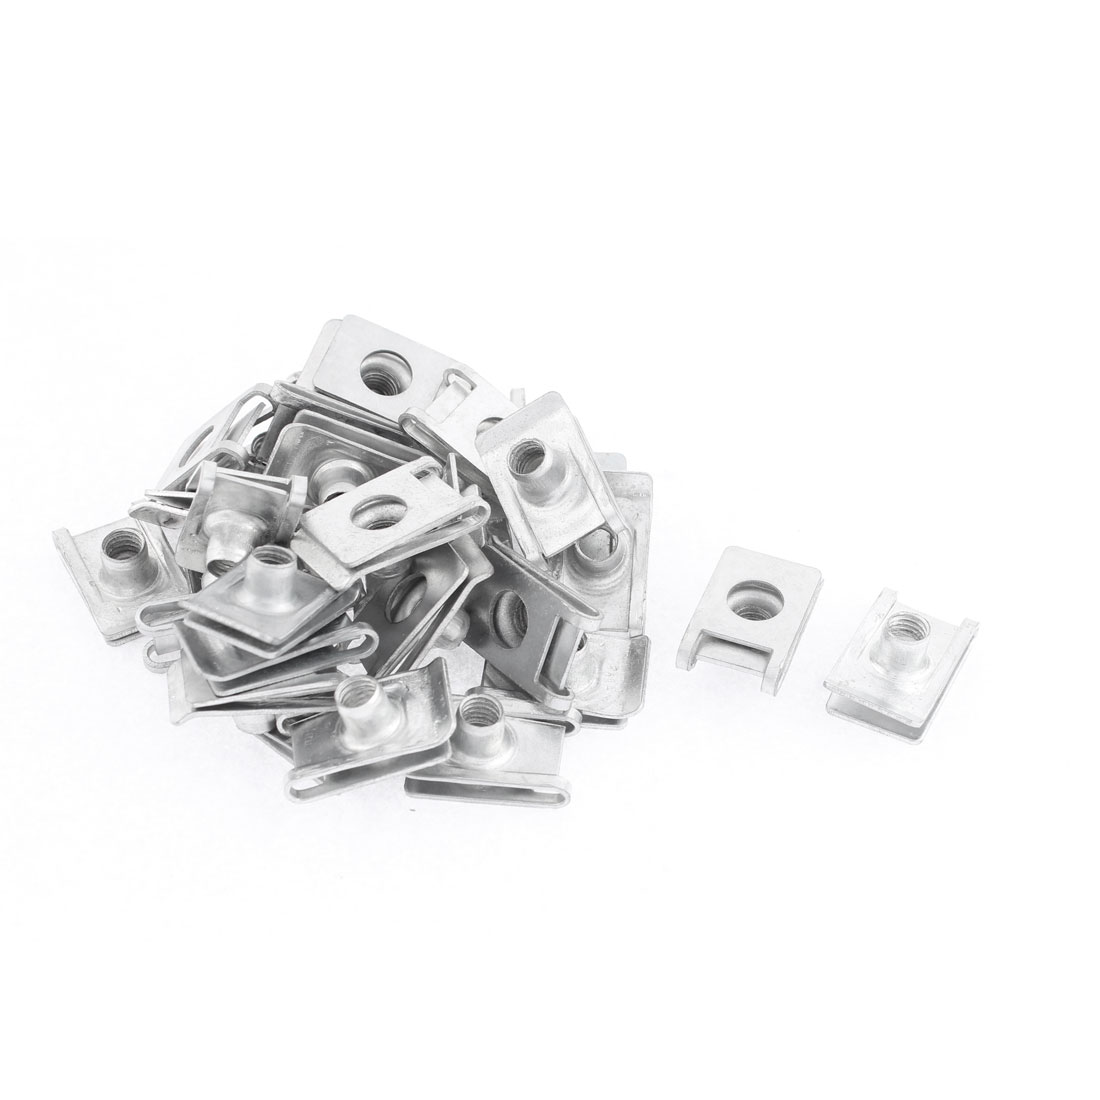 40Pcs Silver Tone Metal Car Door Dashboard Screw U-Type Clips